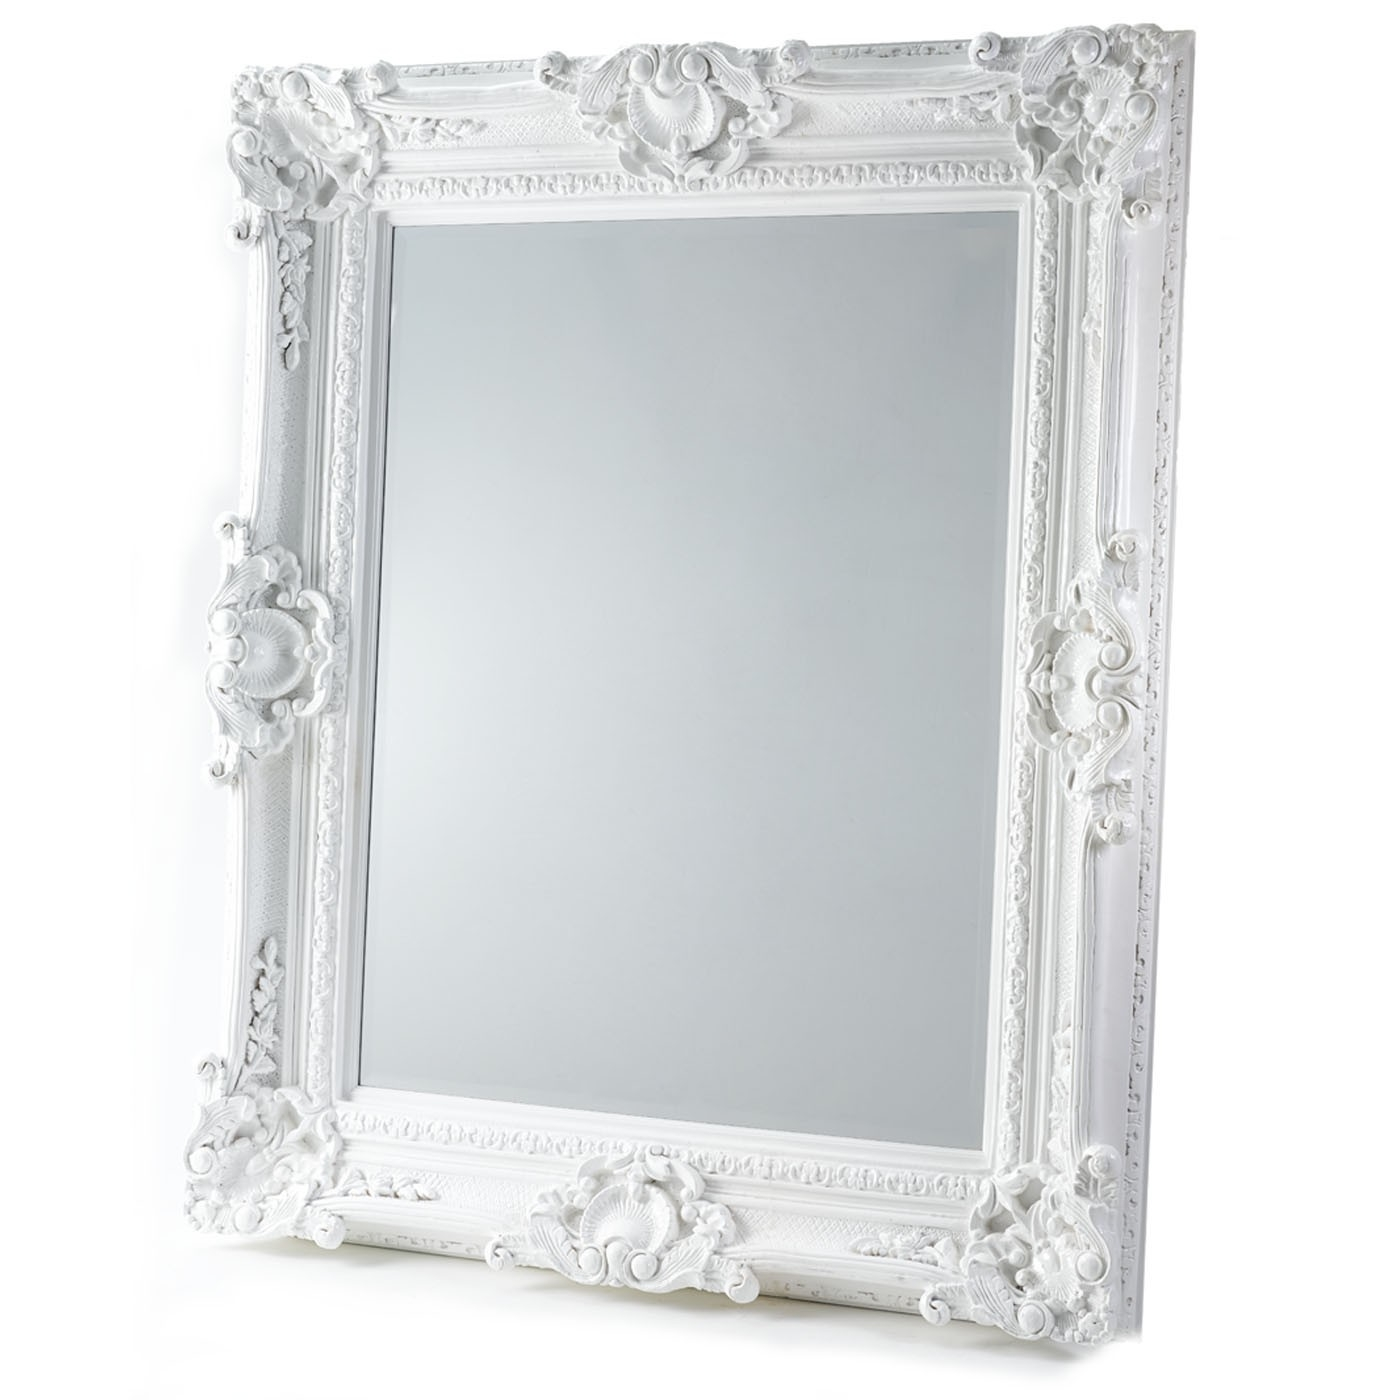 Large White Mirror Google Search Room Decor Pinterest Inside Baroque Mirror (Image 12 of 15)